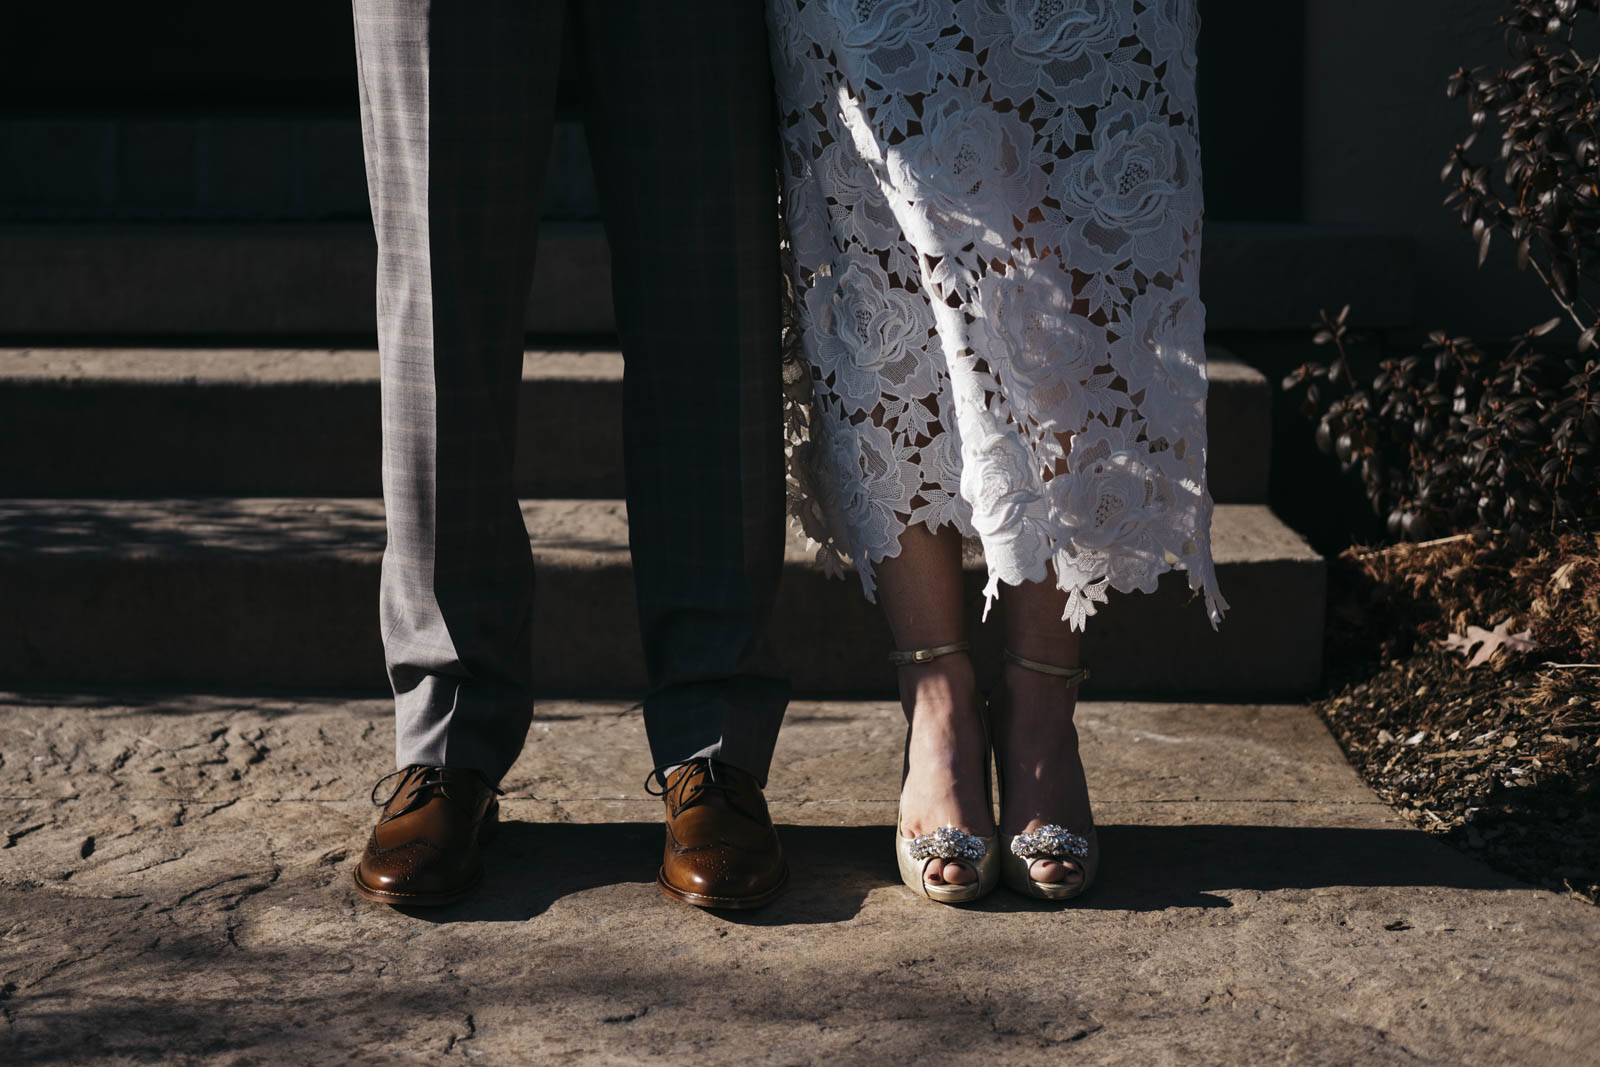 Bride and groom's shoes on their wedding day.